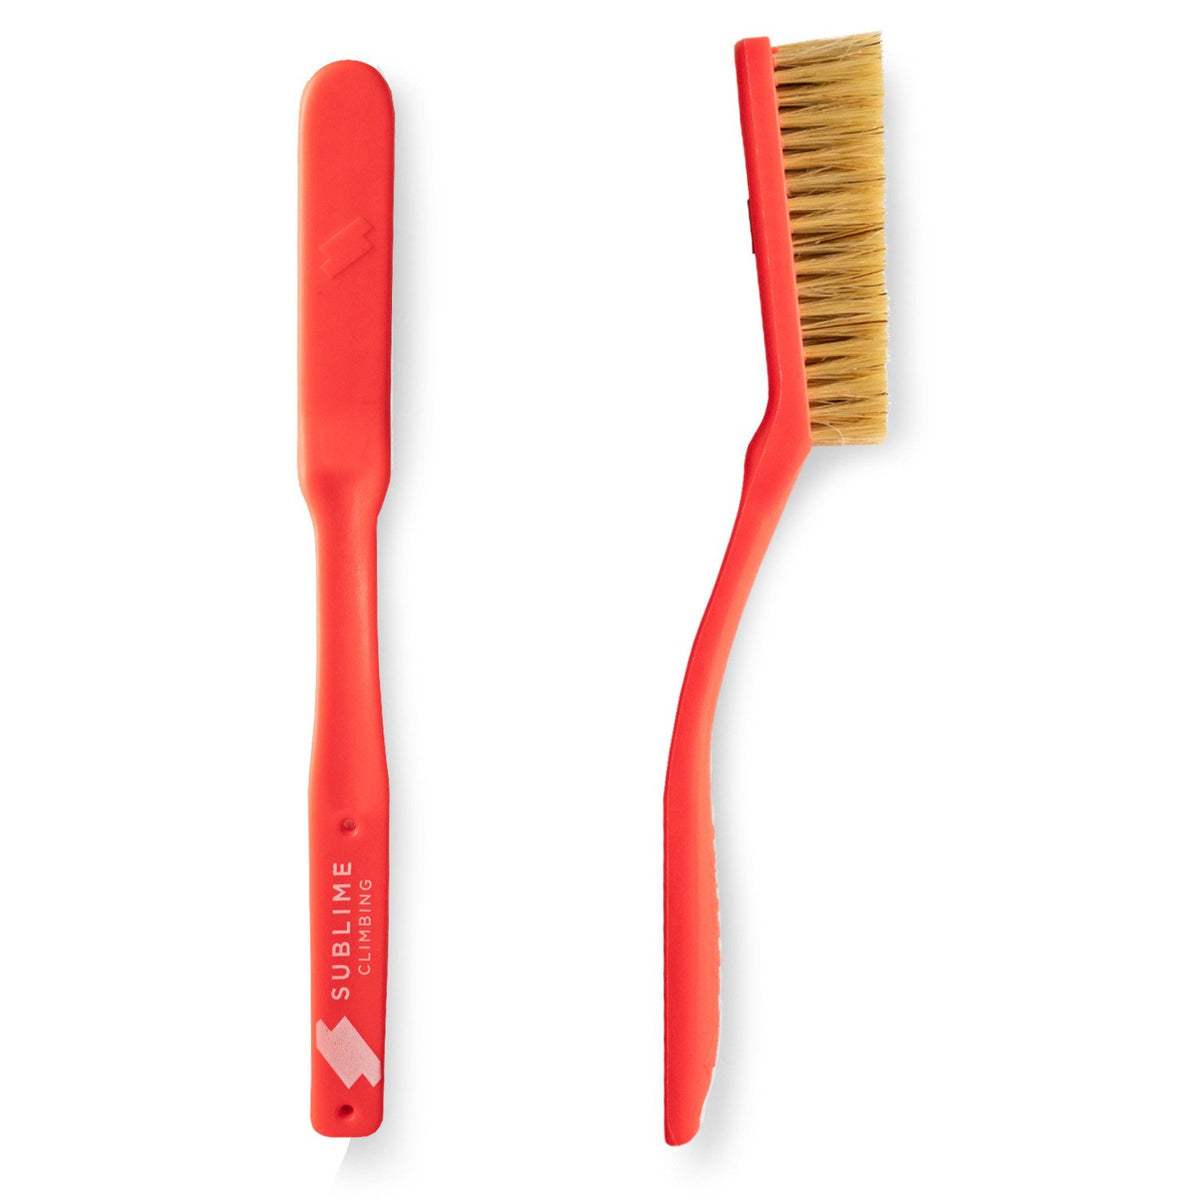 Pair of Sublime Climbing Slimline Boars Hair Brushes, showing reverse and side view, in red colour